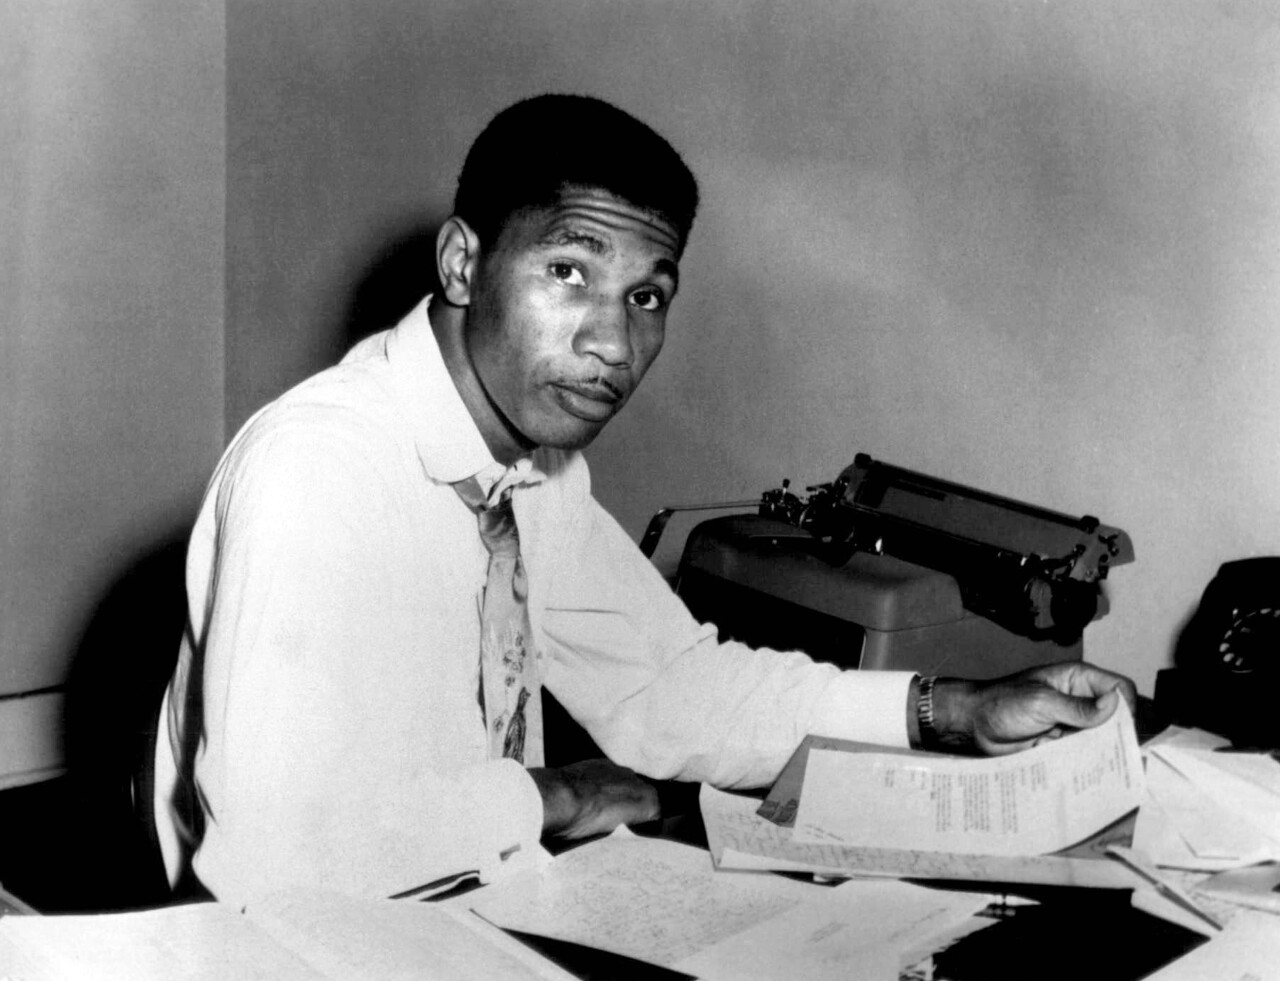 In this Aug. 9, 1955 file photo, Medgar Evers, state secretary for the NAACP poses for a photo in Jackson. (AP Photo/File)